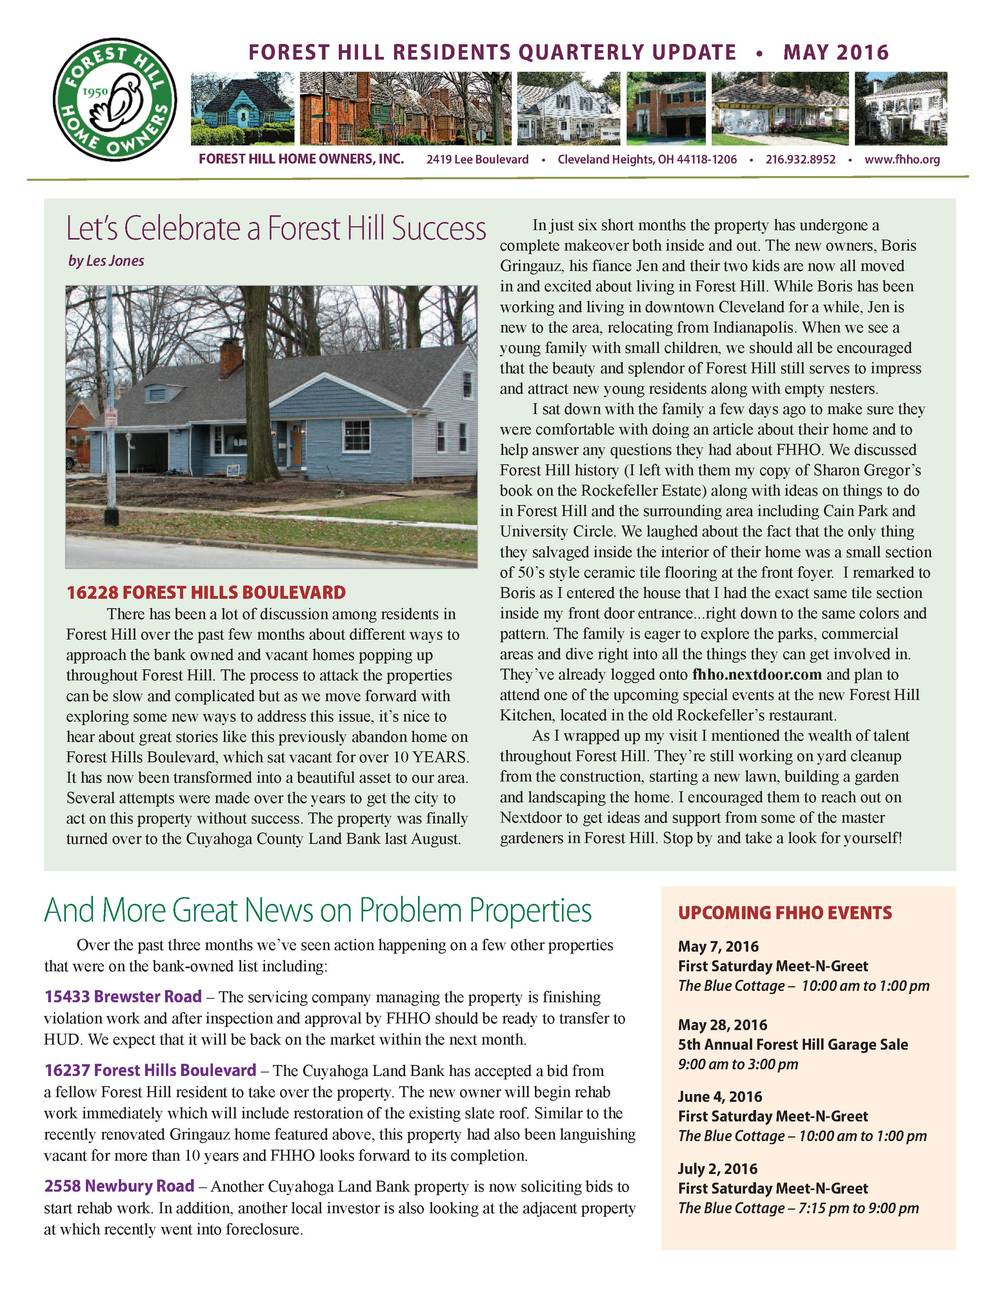 Forest Hill Home Owners Newsletter - May 2016